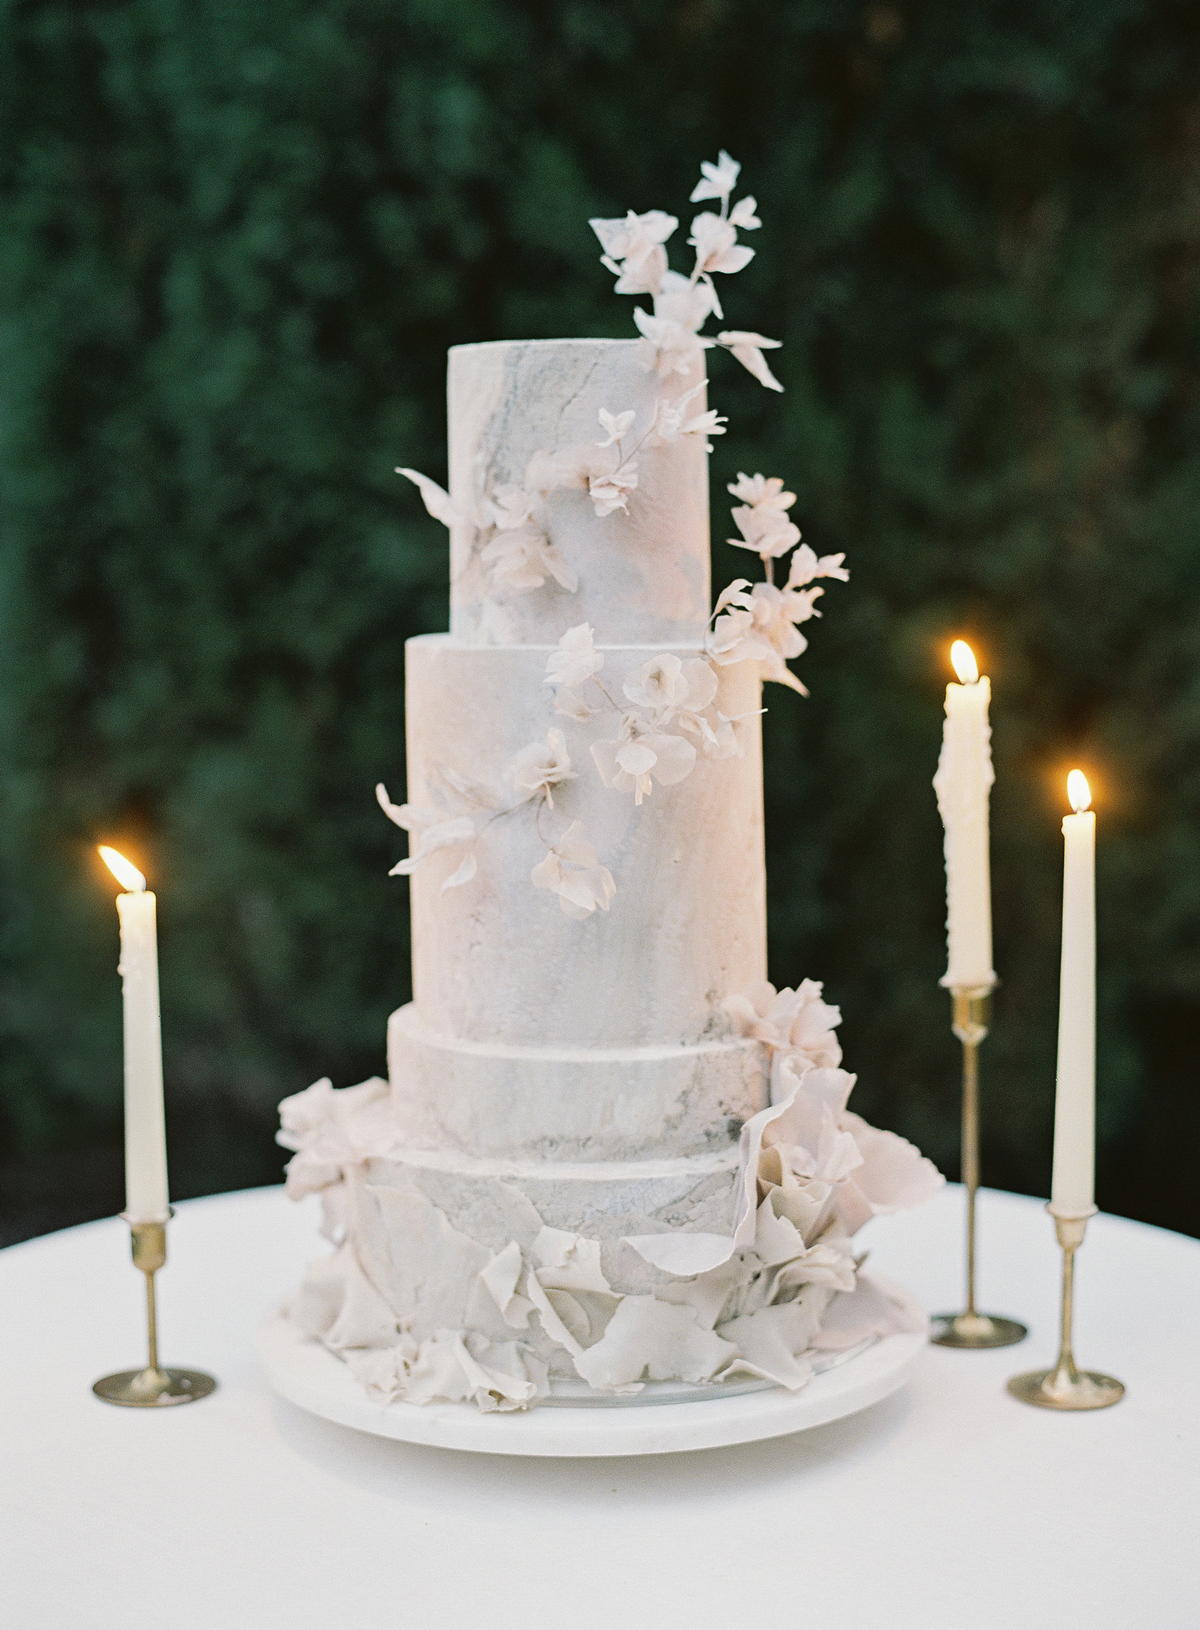 A Trend We're Loving: Wedding Cakes with Micro-Tiers